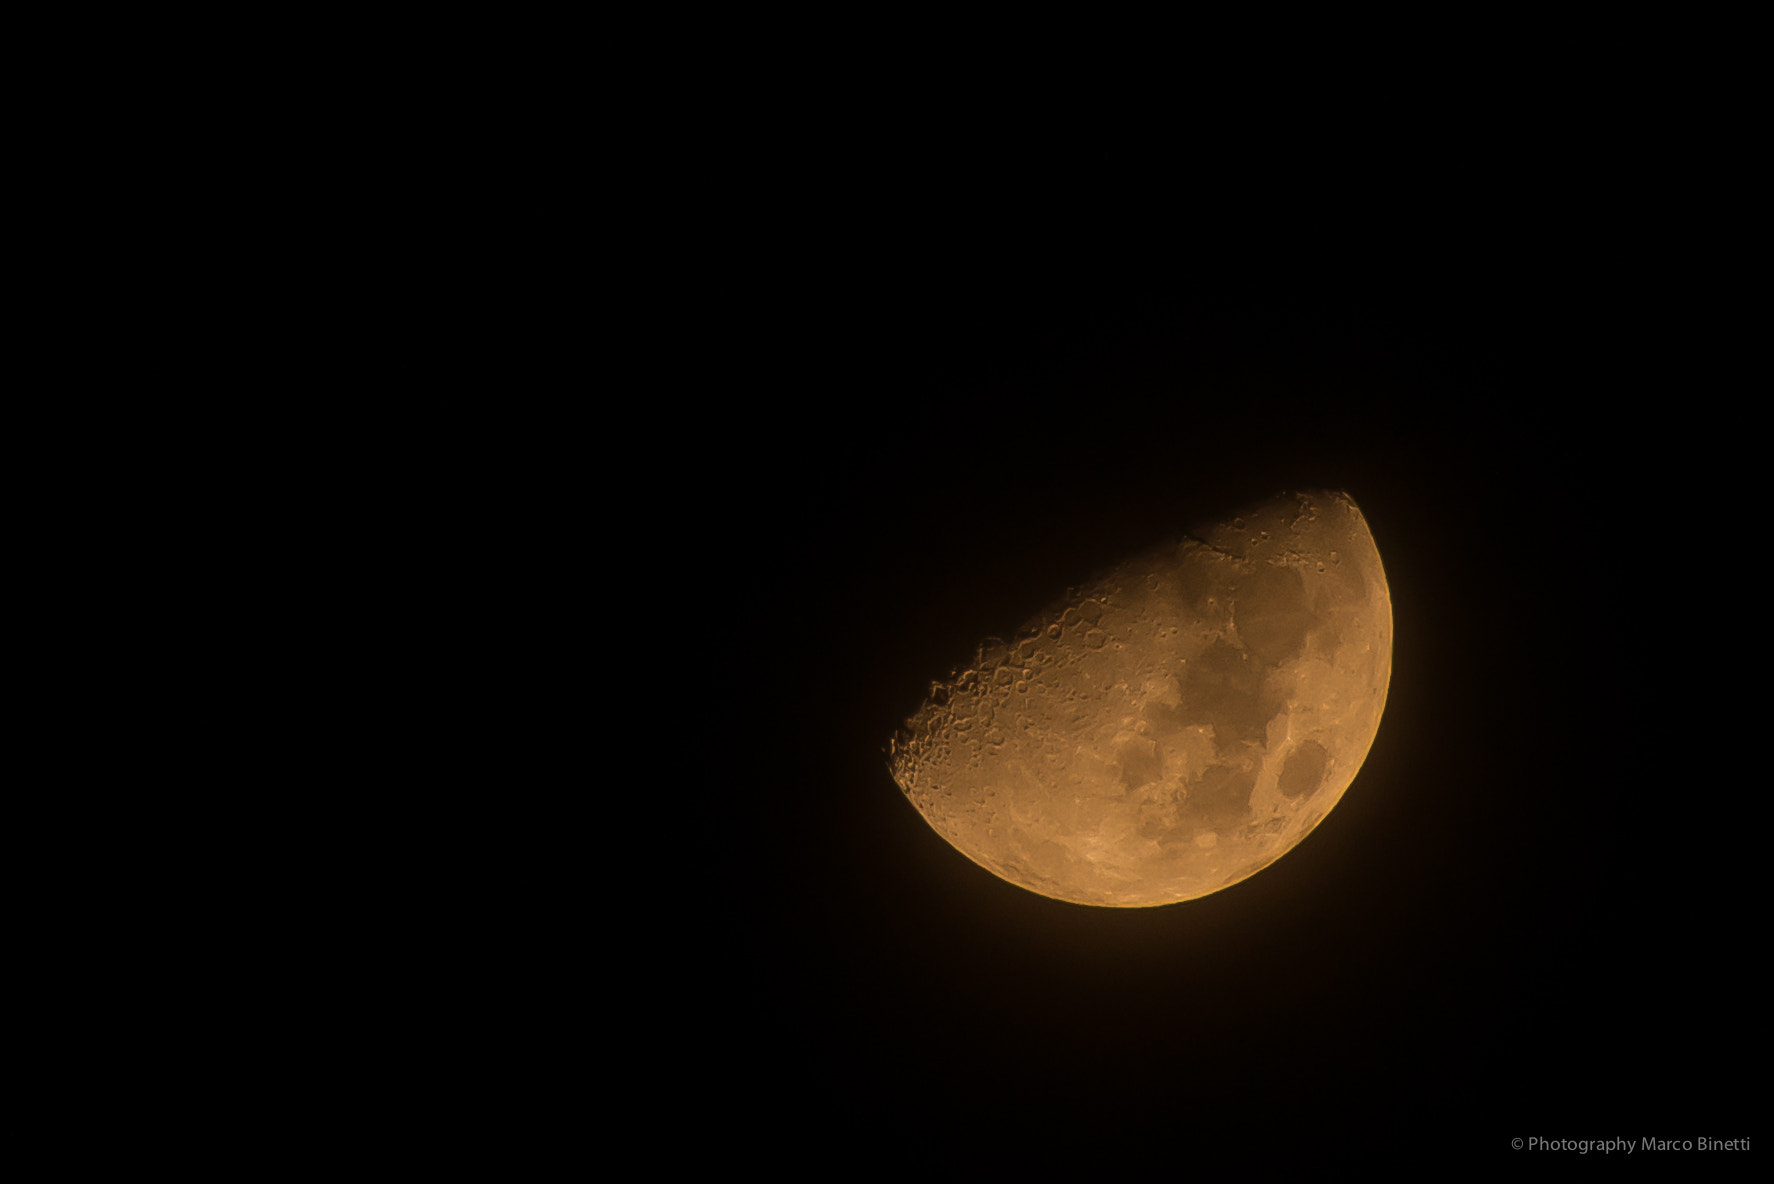 Photograph The dark side of the moon by Marco Binetti on 500px